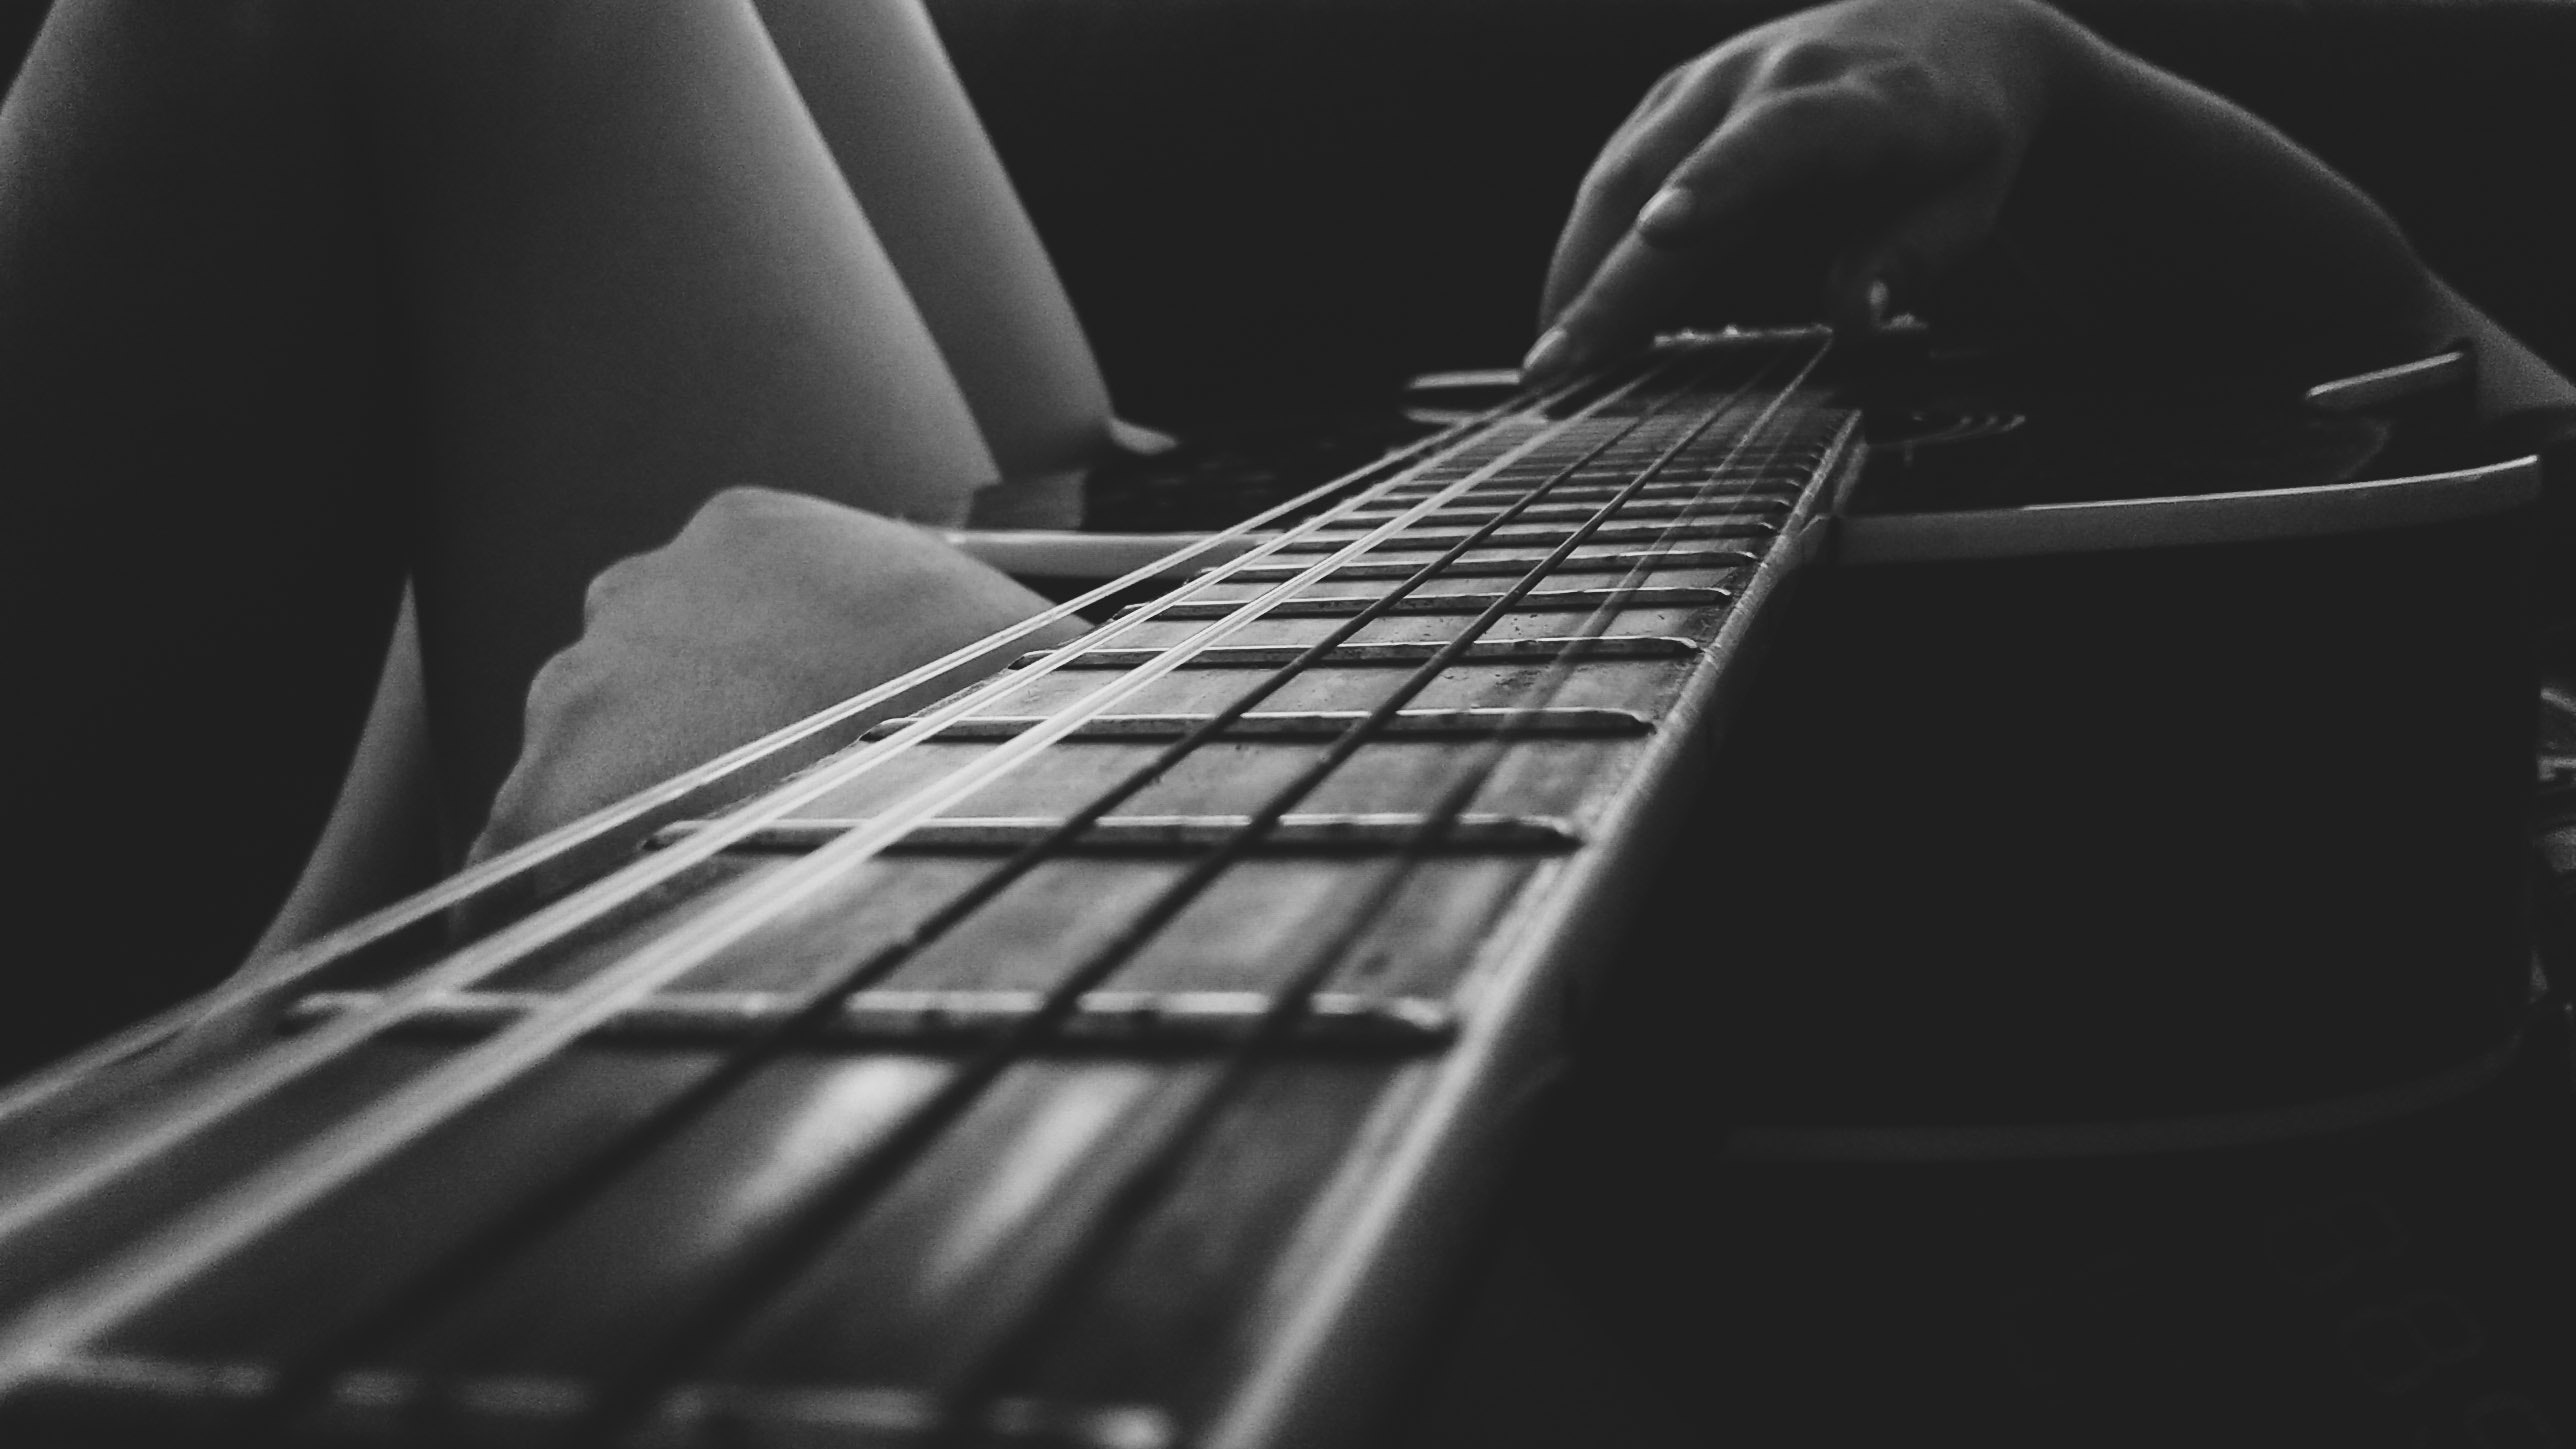 Person holding an acoustic guitar photo